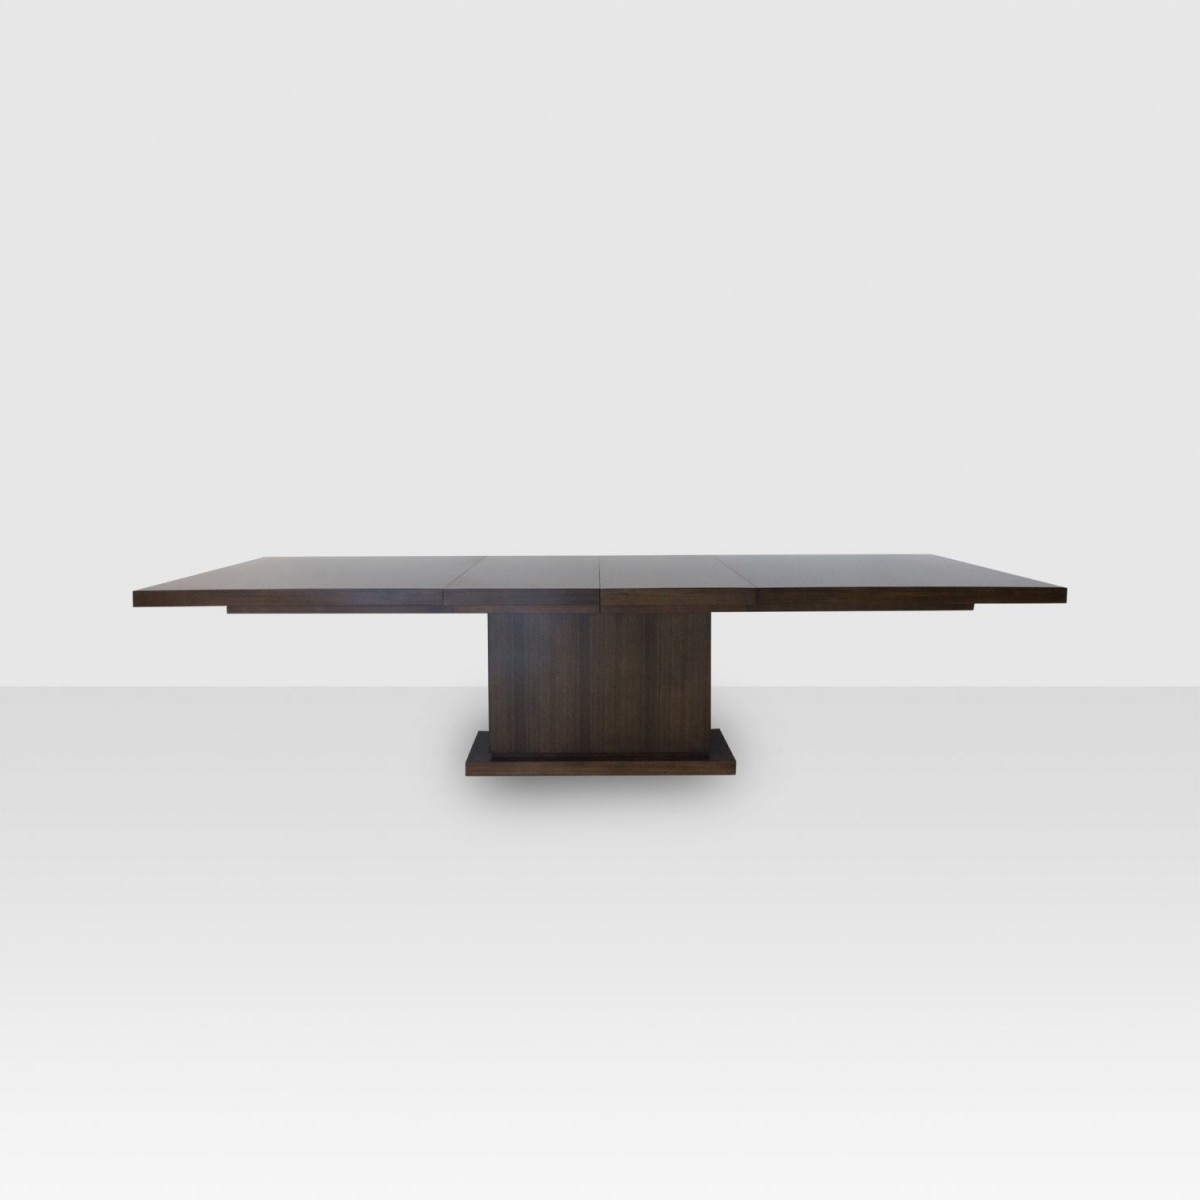 Most Recent Michael Weiss Bradford Dining Table – Elte In Bradford Dining Tables (View 4 of 25)